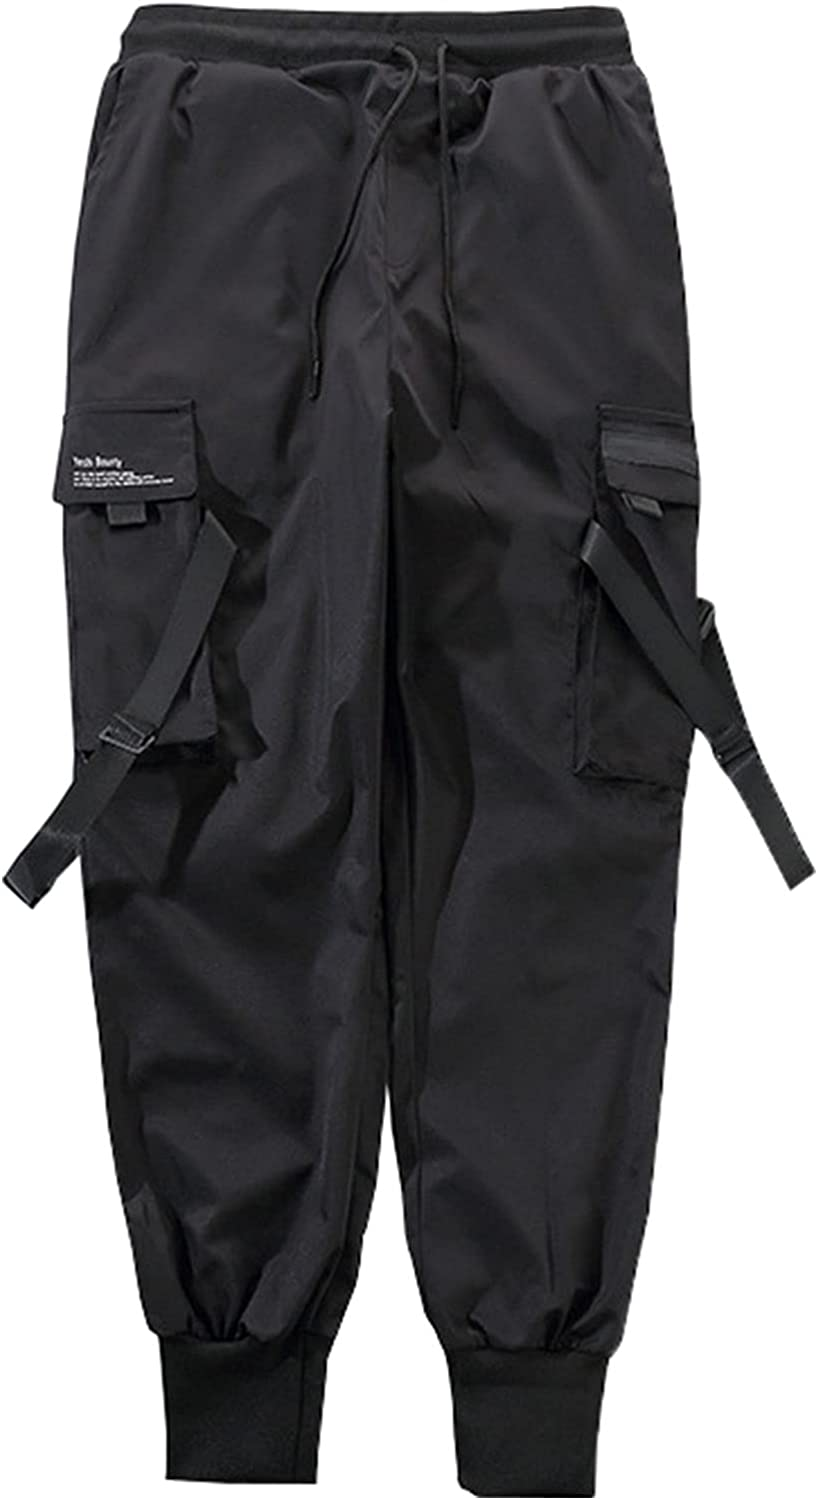 LZJDS Men's Functional Overalls Casual Teen Cargo Pants Joggers Multi-Pocket Drawstring Trousers